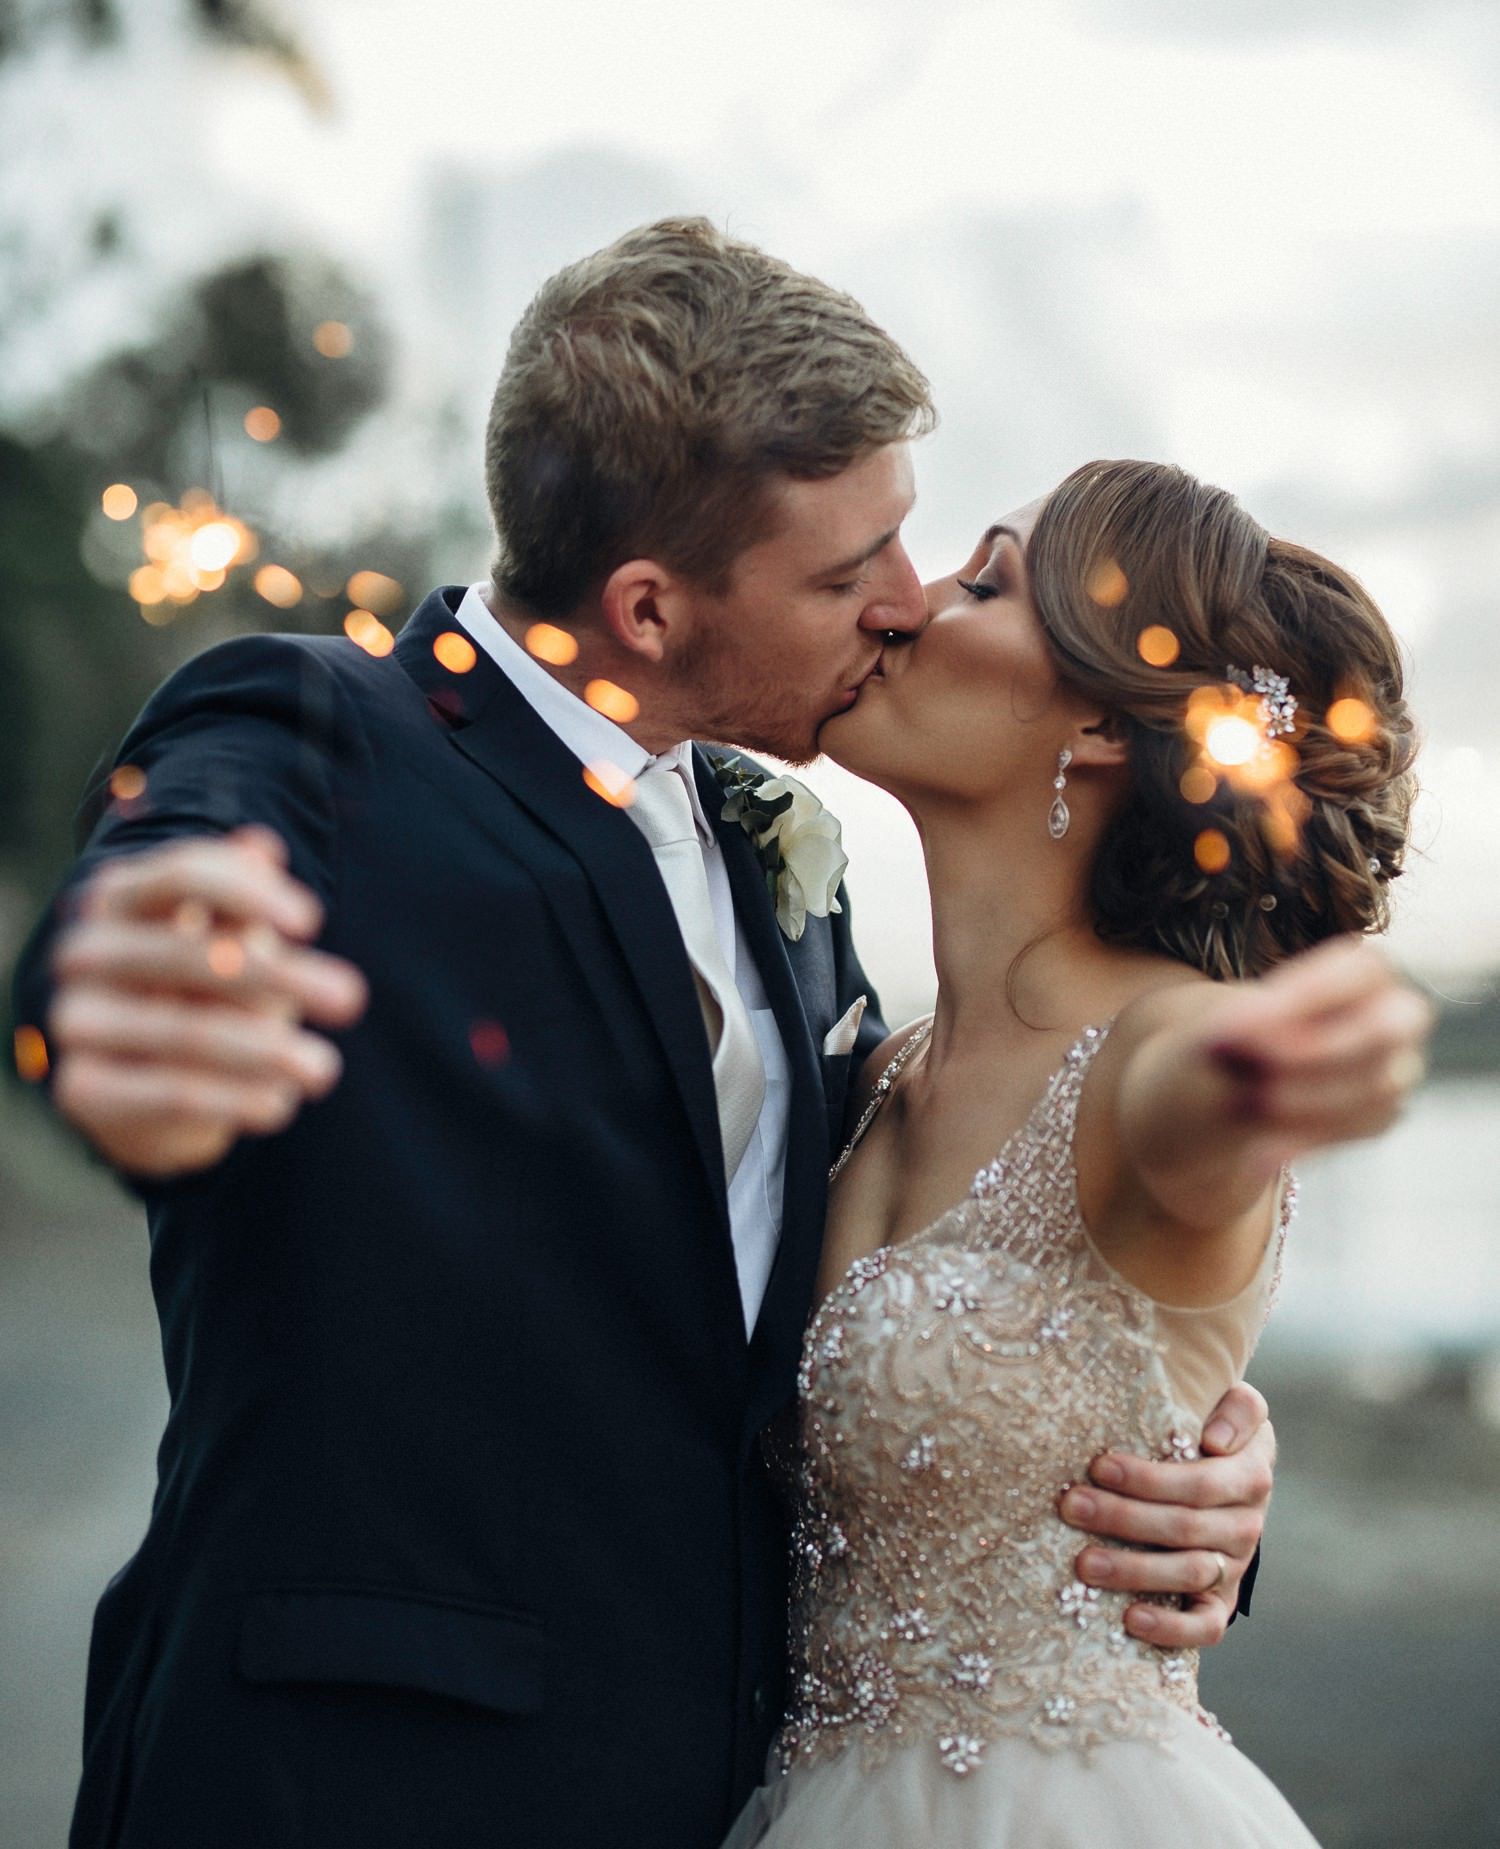 Couple kissing while holding sparklers